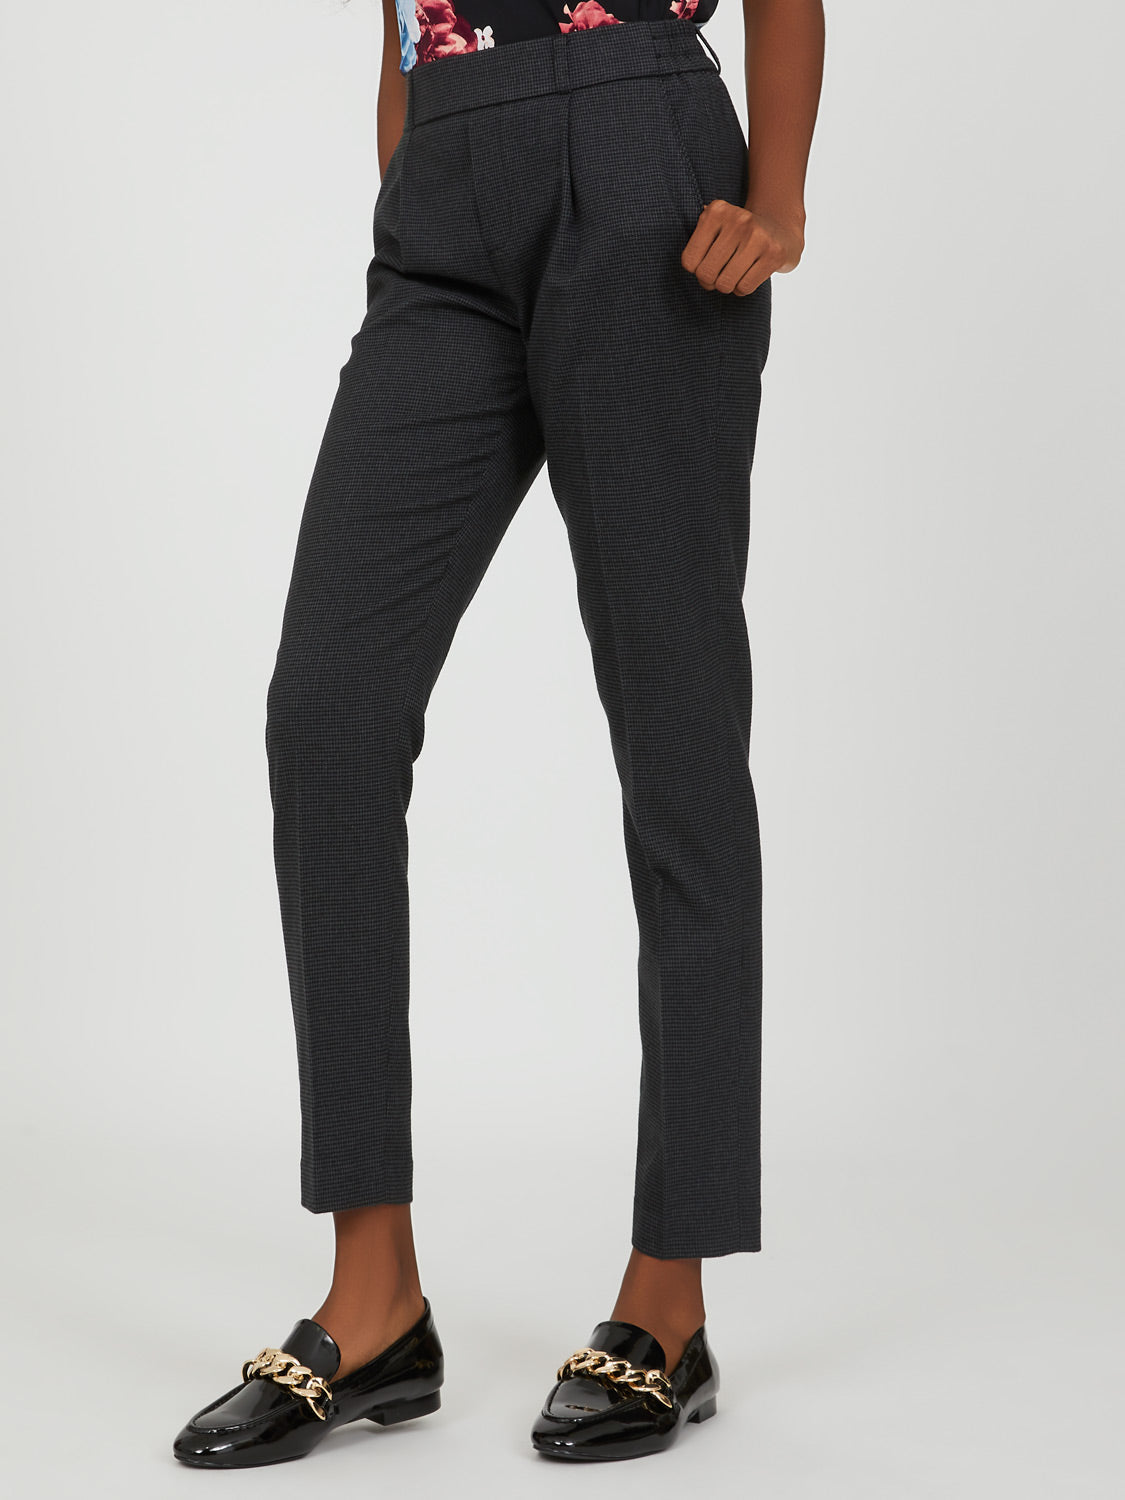 Houndstooth Dressy Jogger Pant